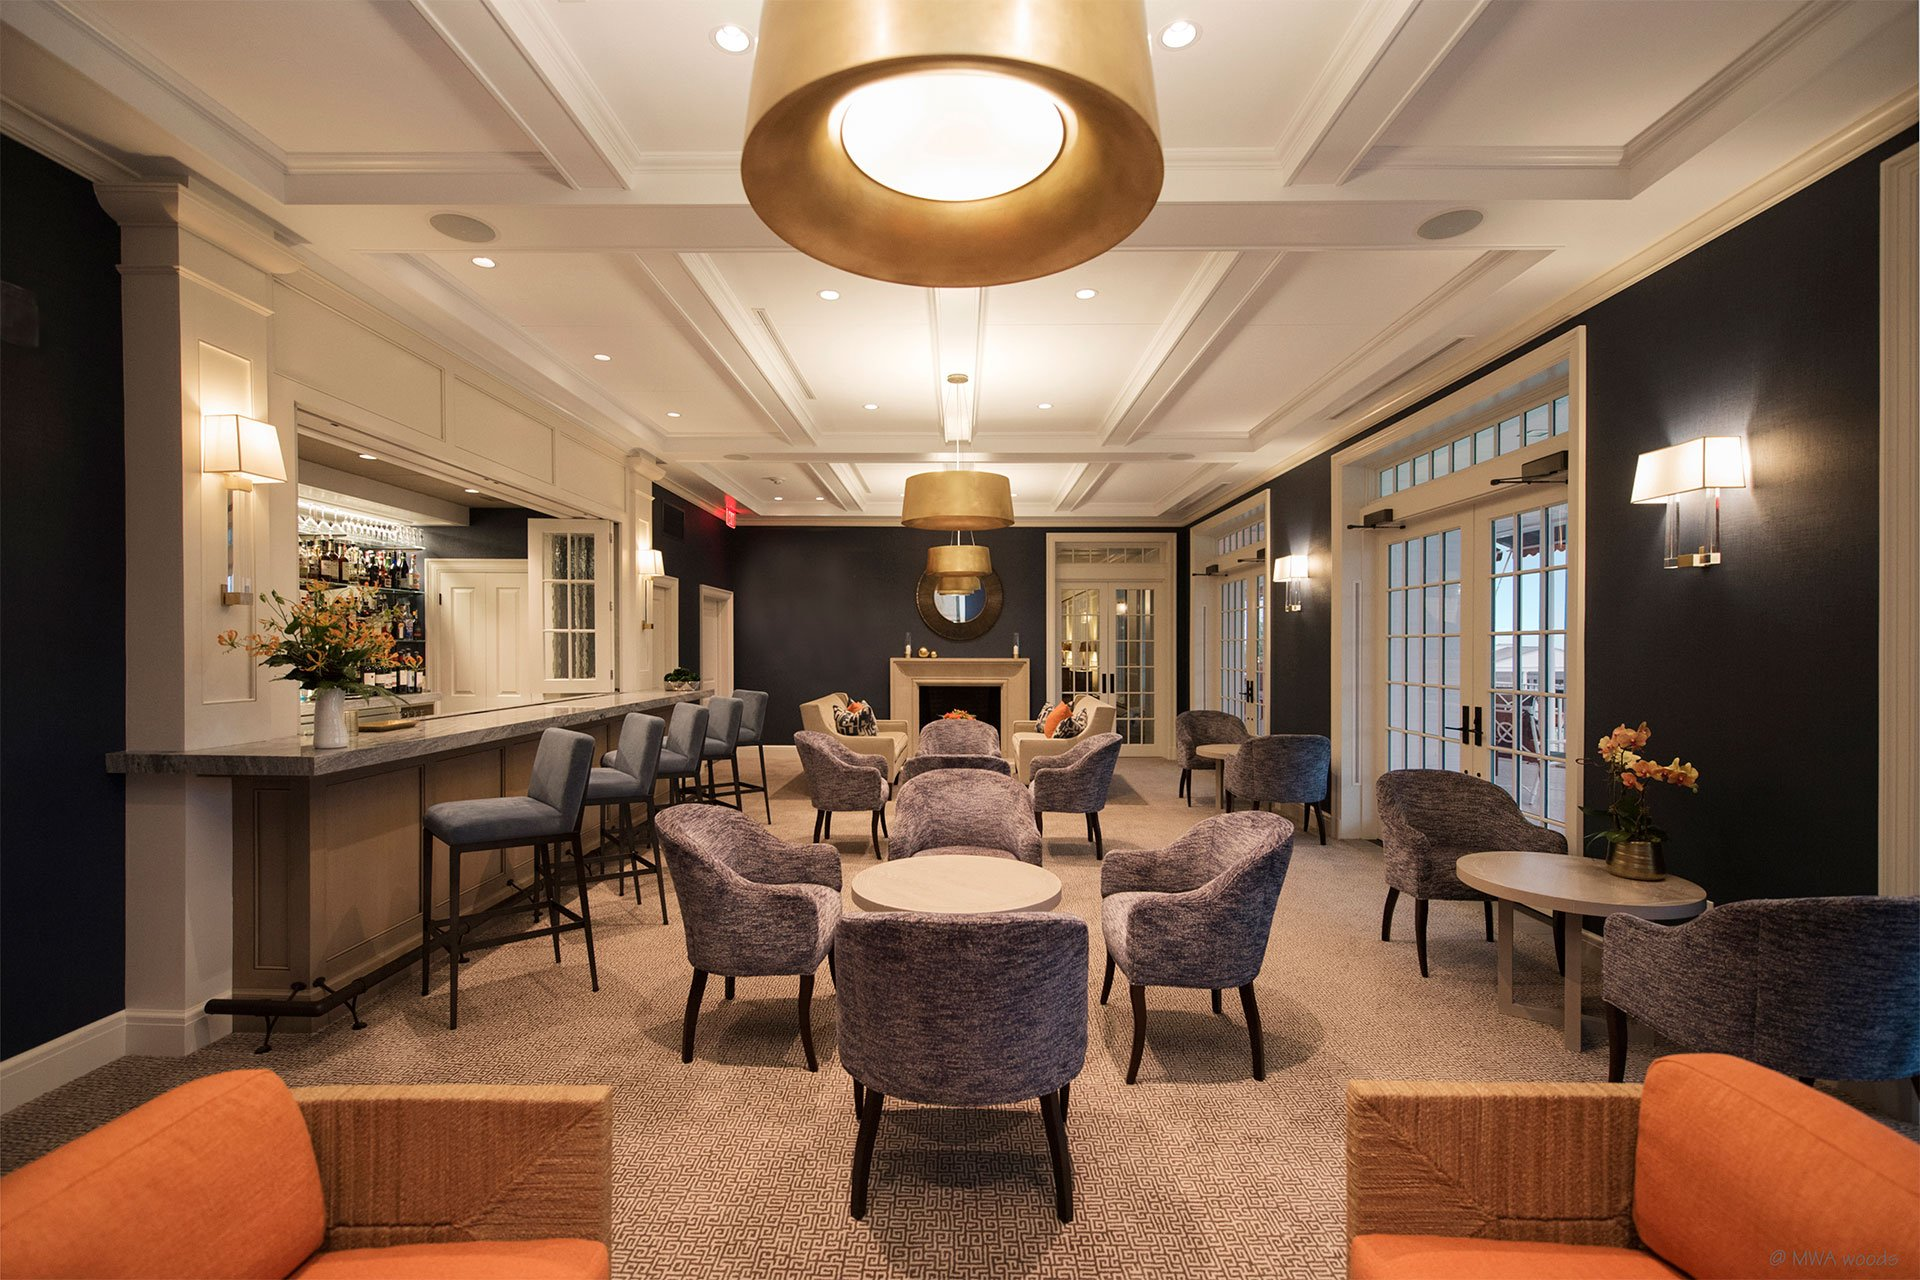 murphy-brothers-contracting-commercial-greewich-country-club-elmers-lounge-06